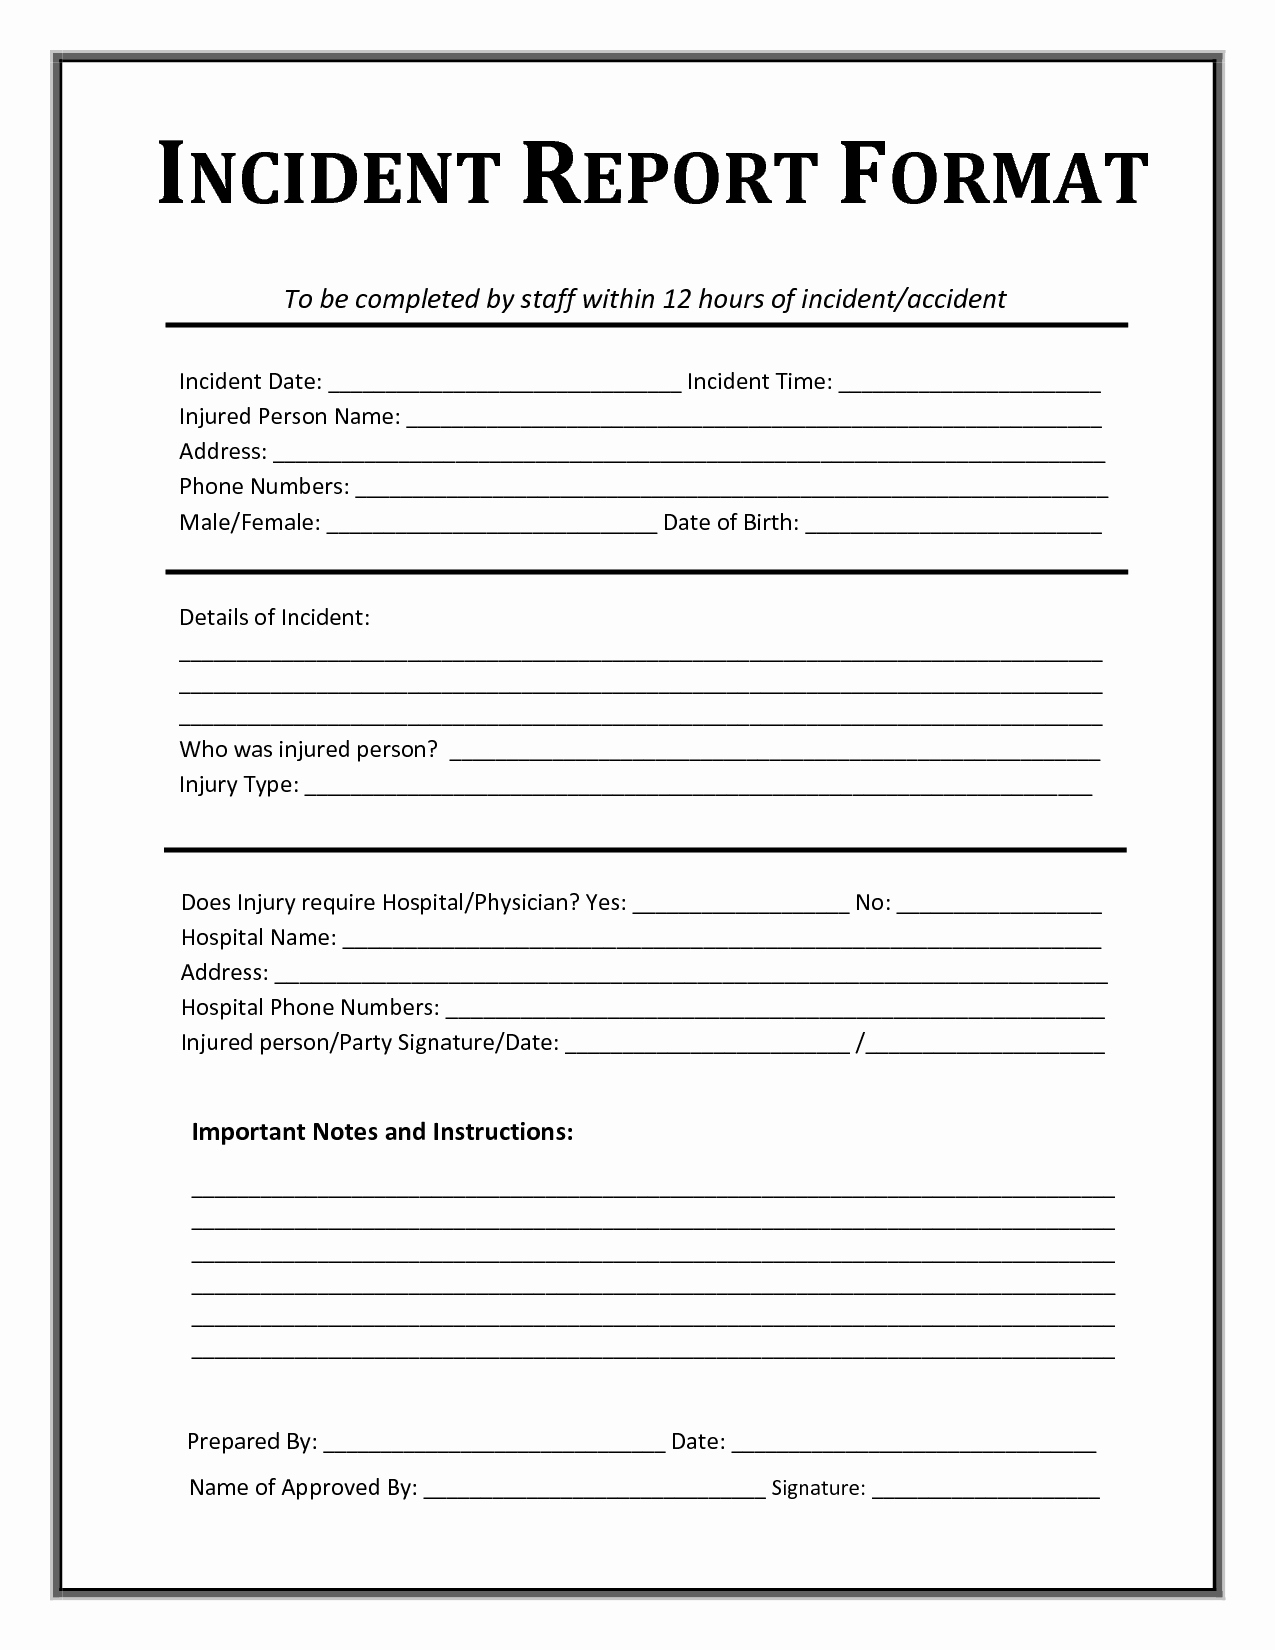 Workplace Incident Report form Template Free Beautiful Incident Report form Template